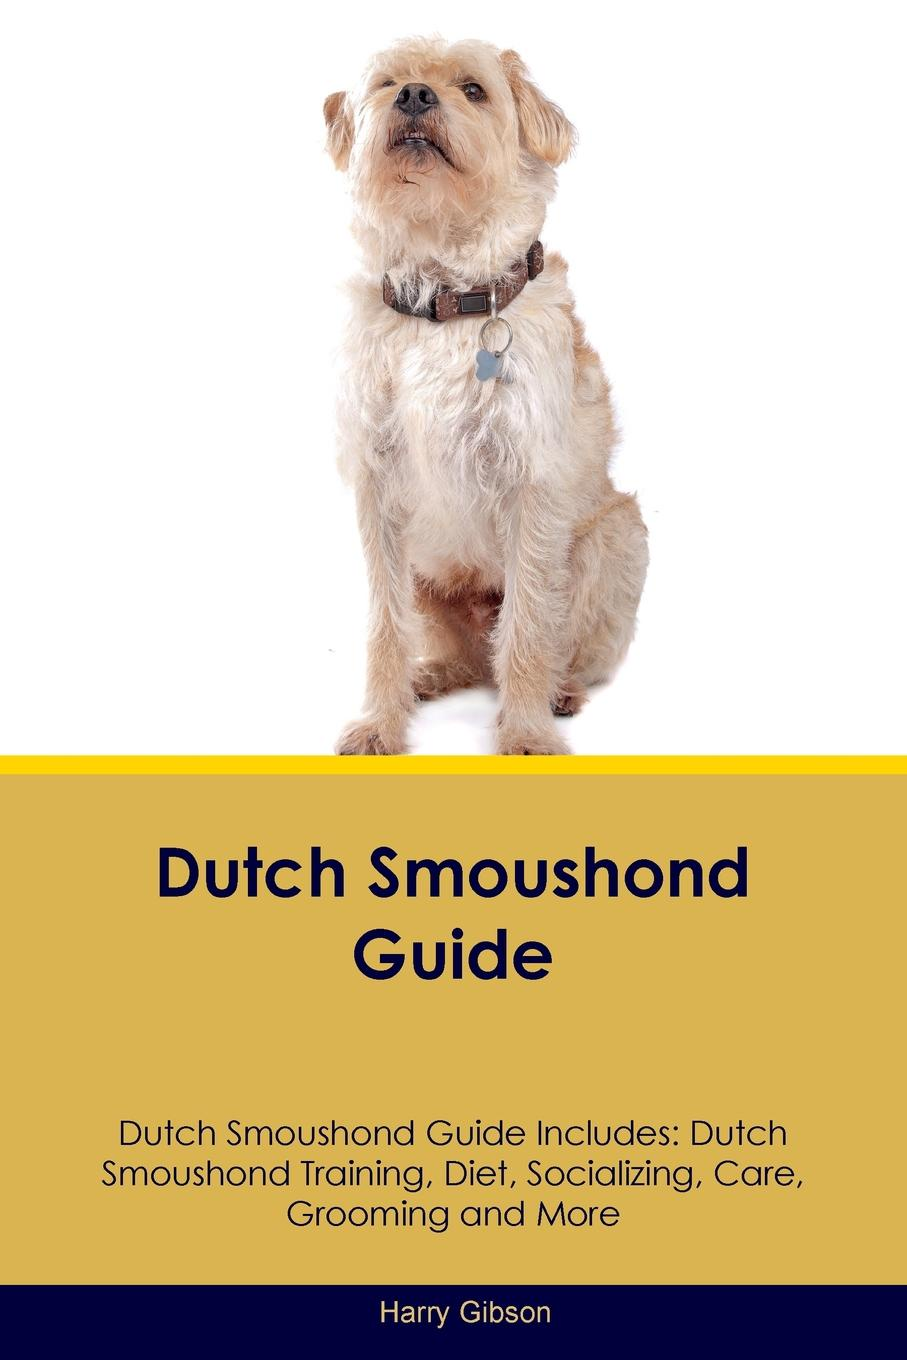 Harry Gibson Dutch Smoushond Guide Dutch Smoushond Guide Includes. Dutch Smoushond Training, Diet, Socializing, Care, Grooming, Breeding and More ника дубровская what the dutch like a drawing book about dutch painting